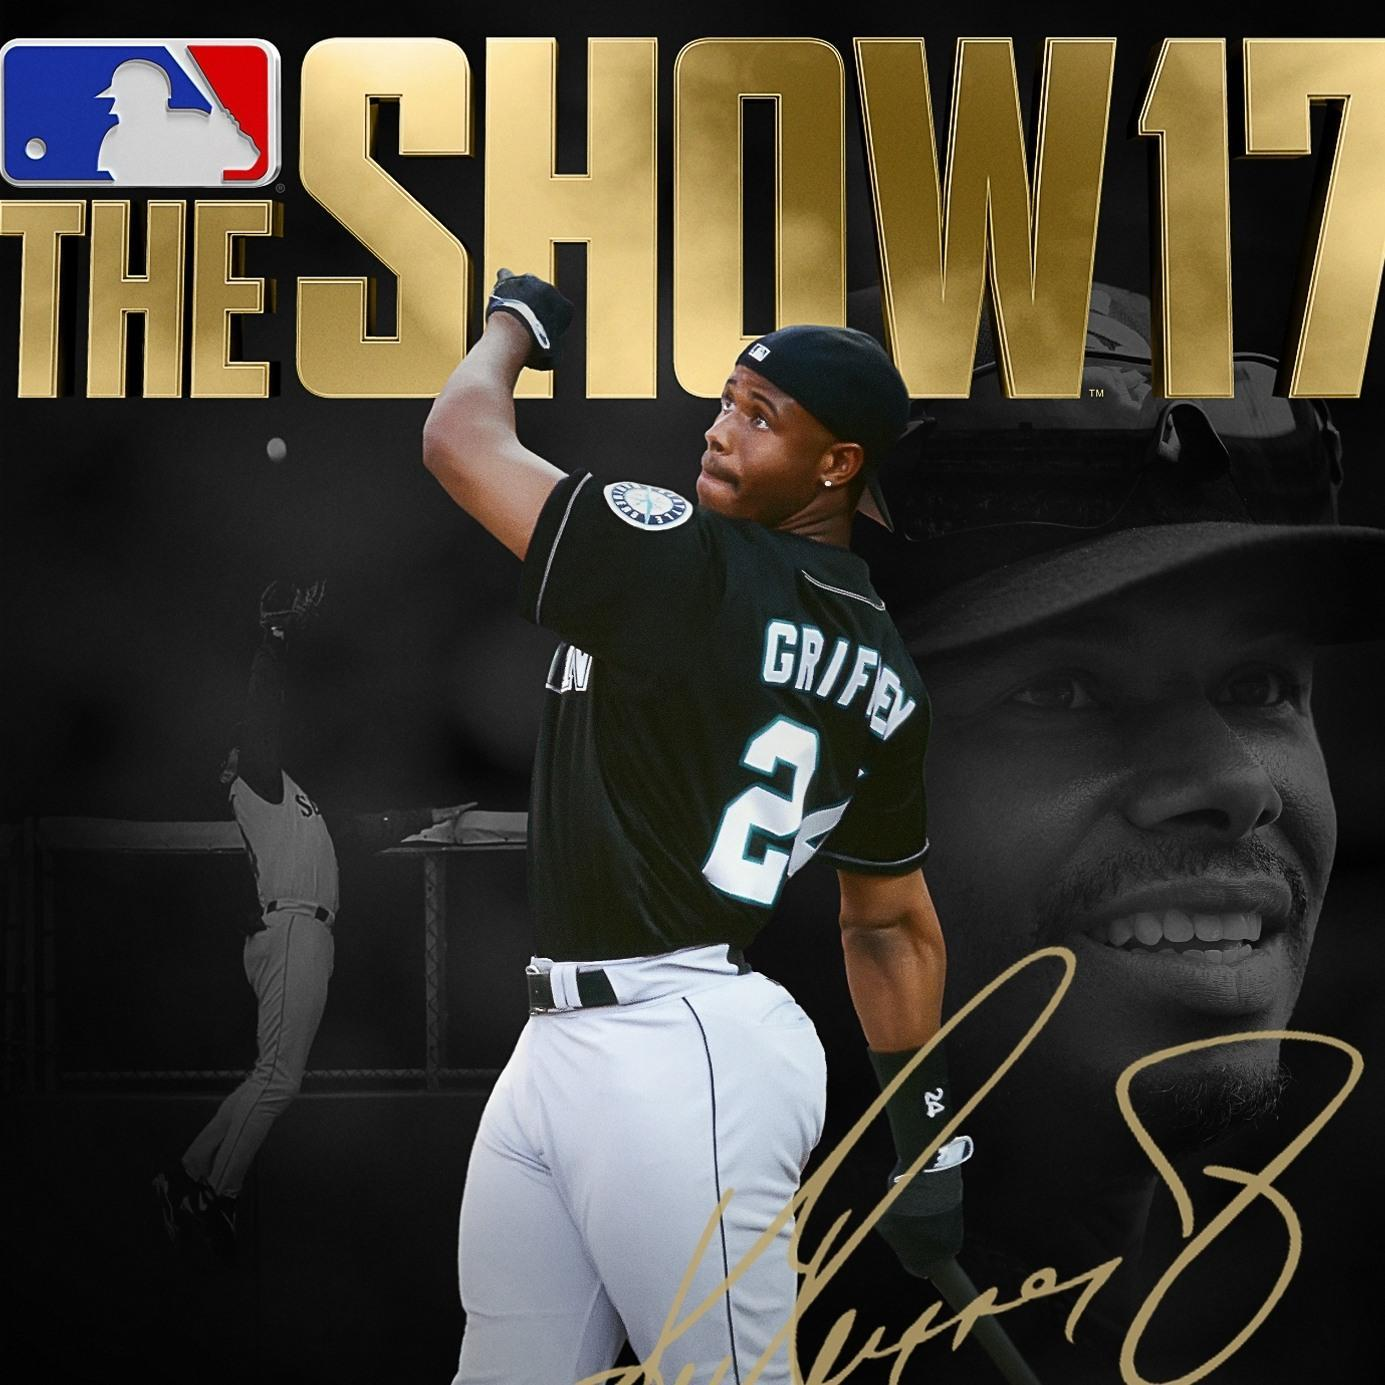 Swing for the fences in the 2017 edition of the popular baseball franchise MLB The Show 17.